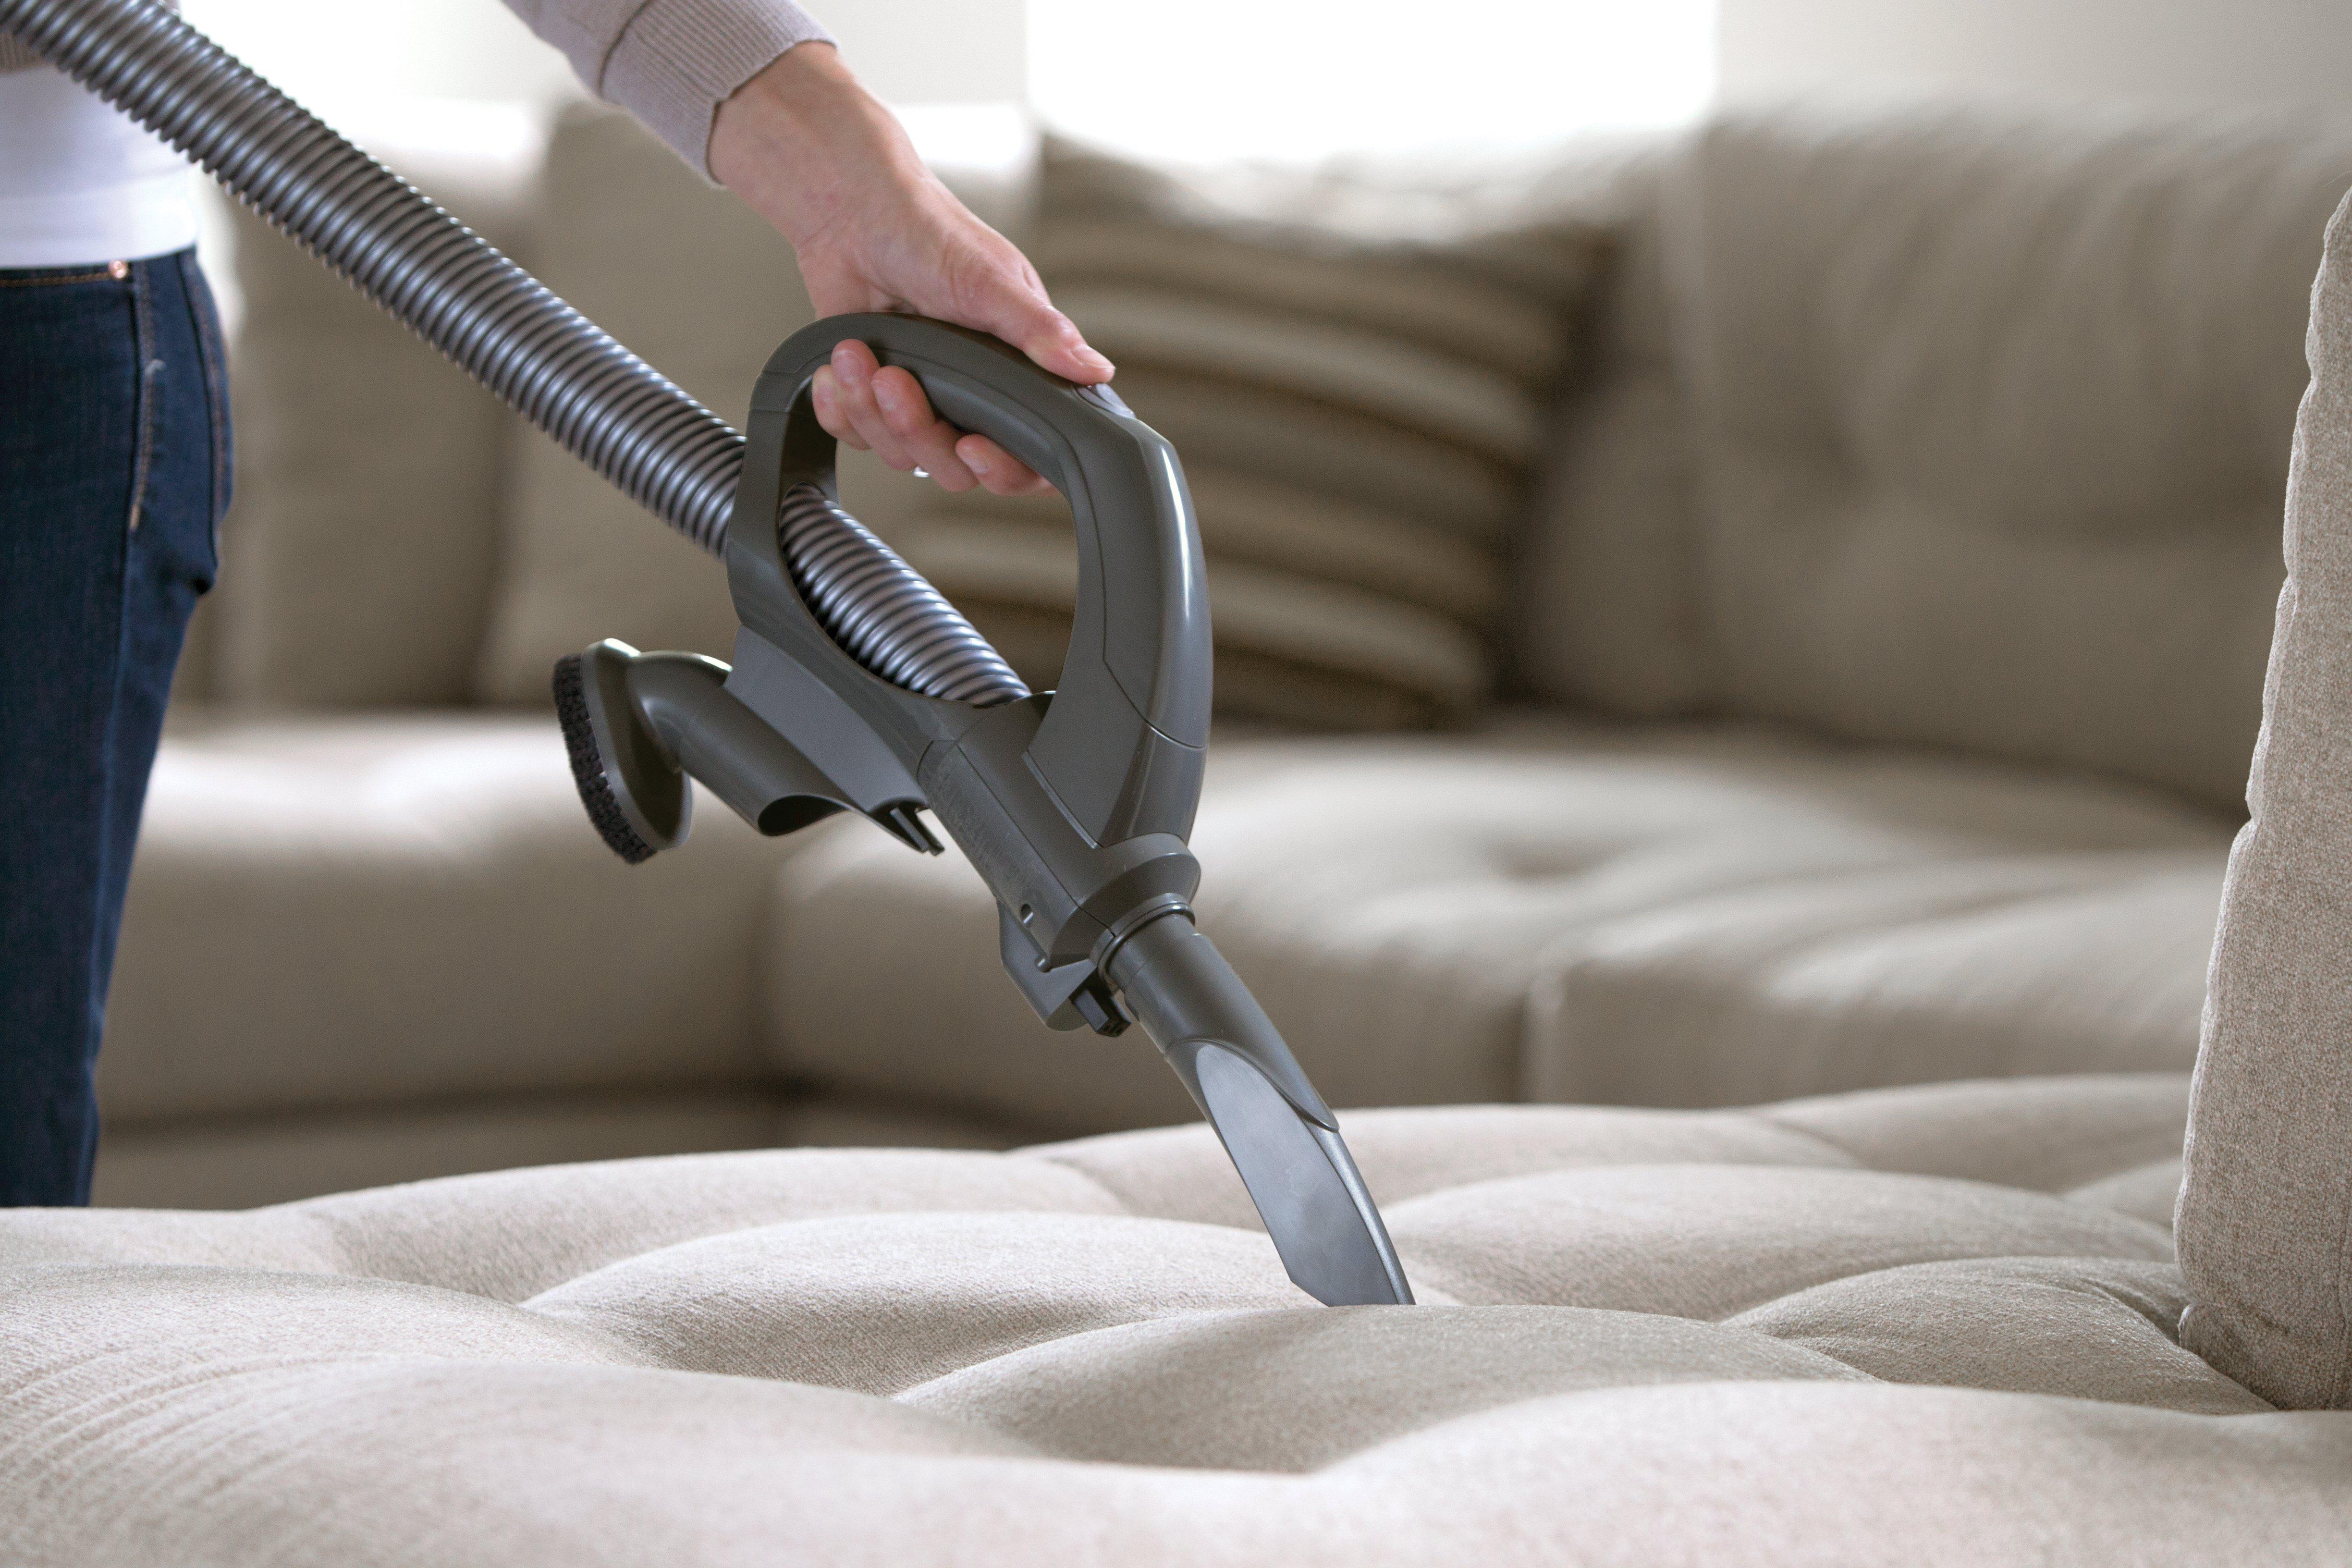 Envy Hush Bagged Canister Vacuum6